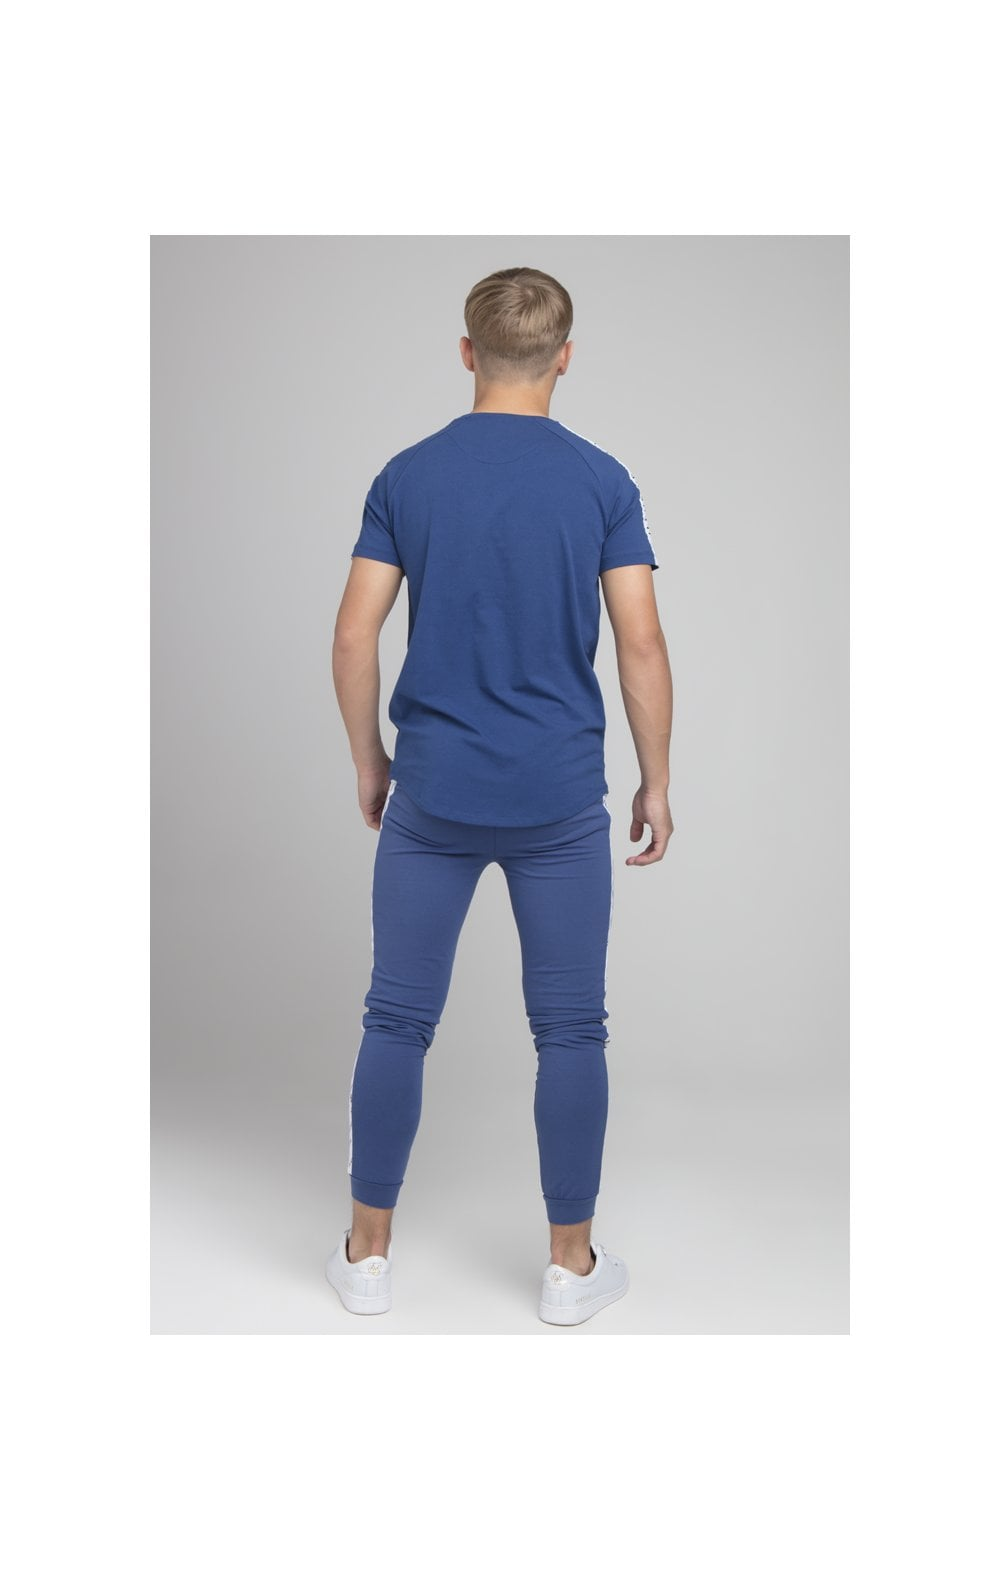 Illusive London Taped Core Tee - Royal Blue (5)